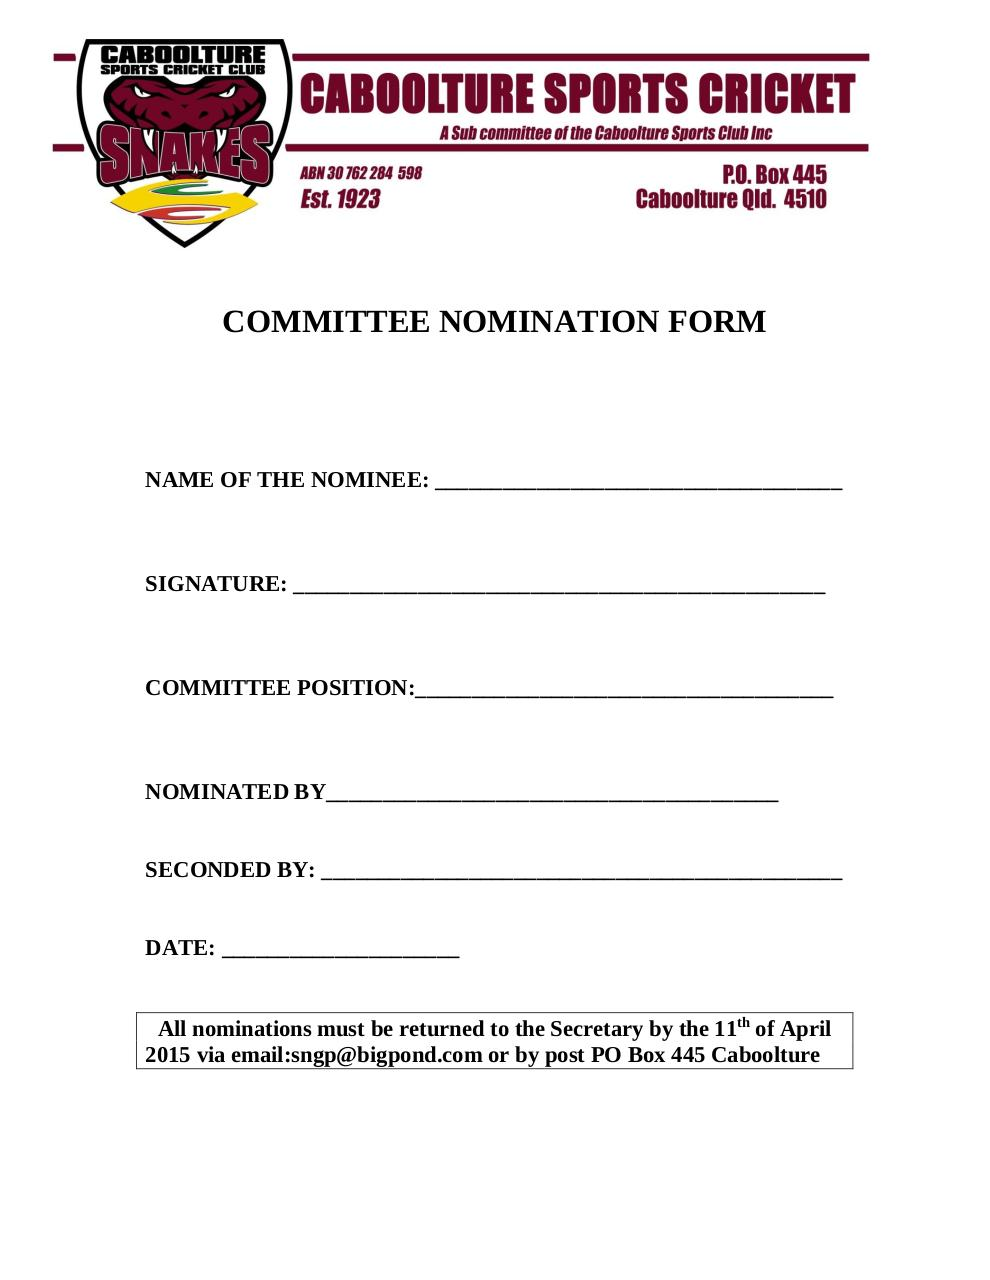 committee nomination form by geoff hart